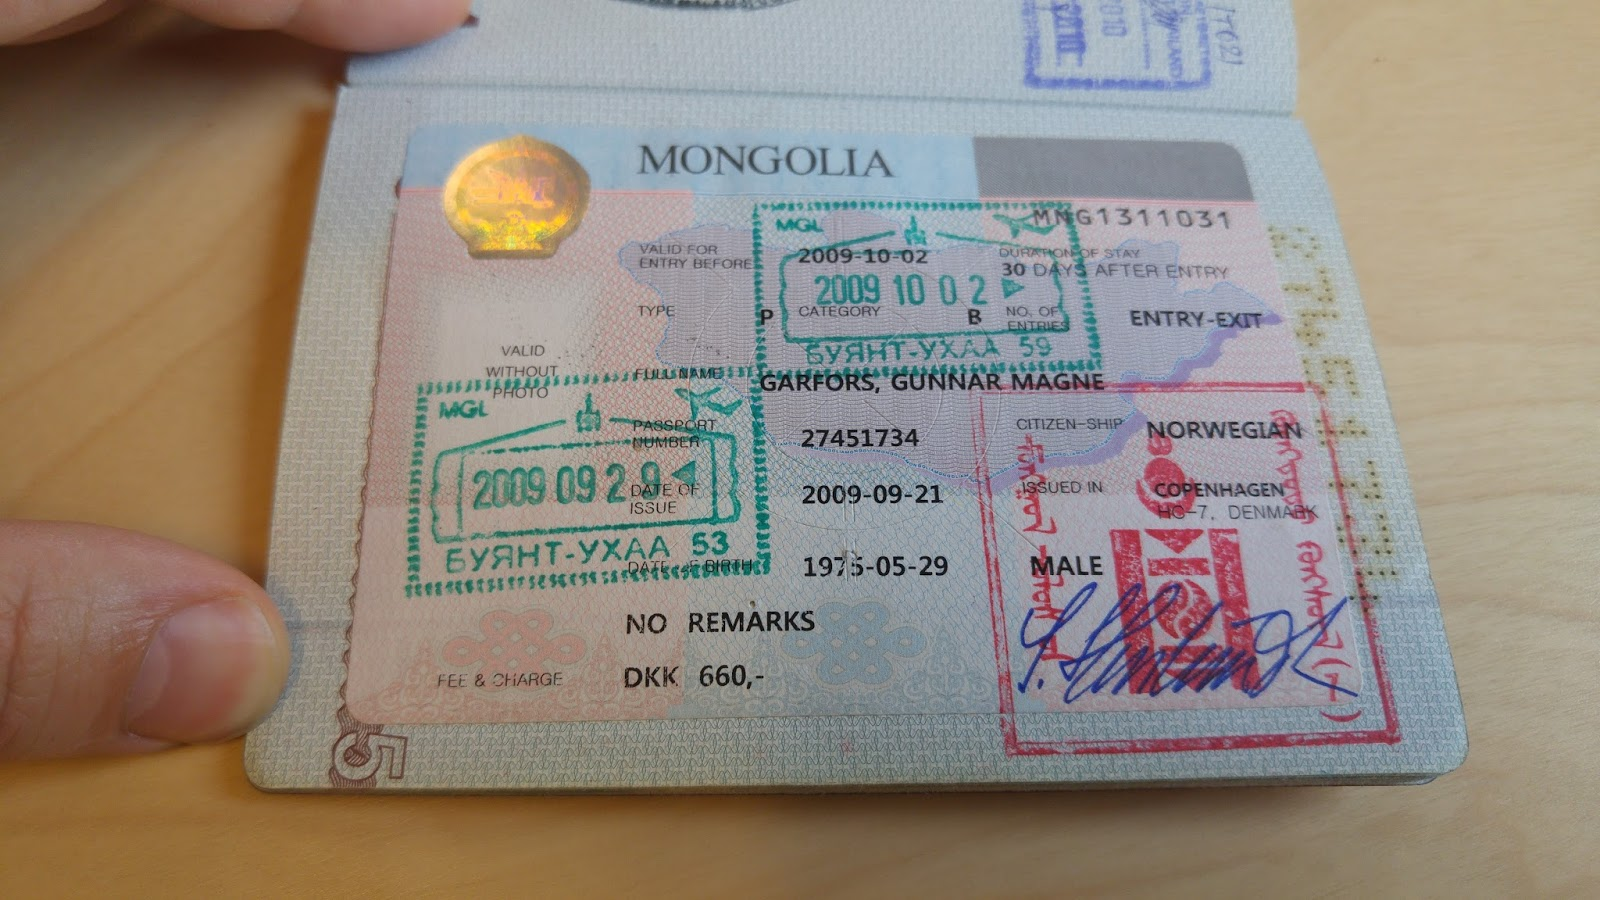 But Where Is Genghis Khan It Was Almost Like This Sticker From MONGOLIA 29 Missing Something